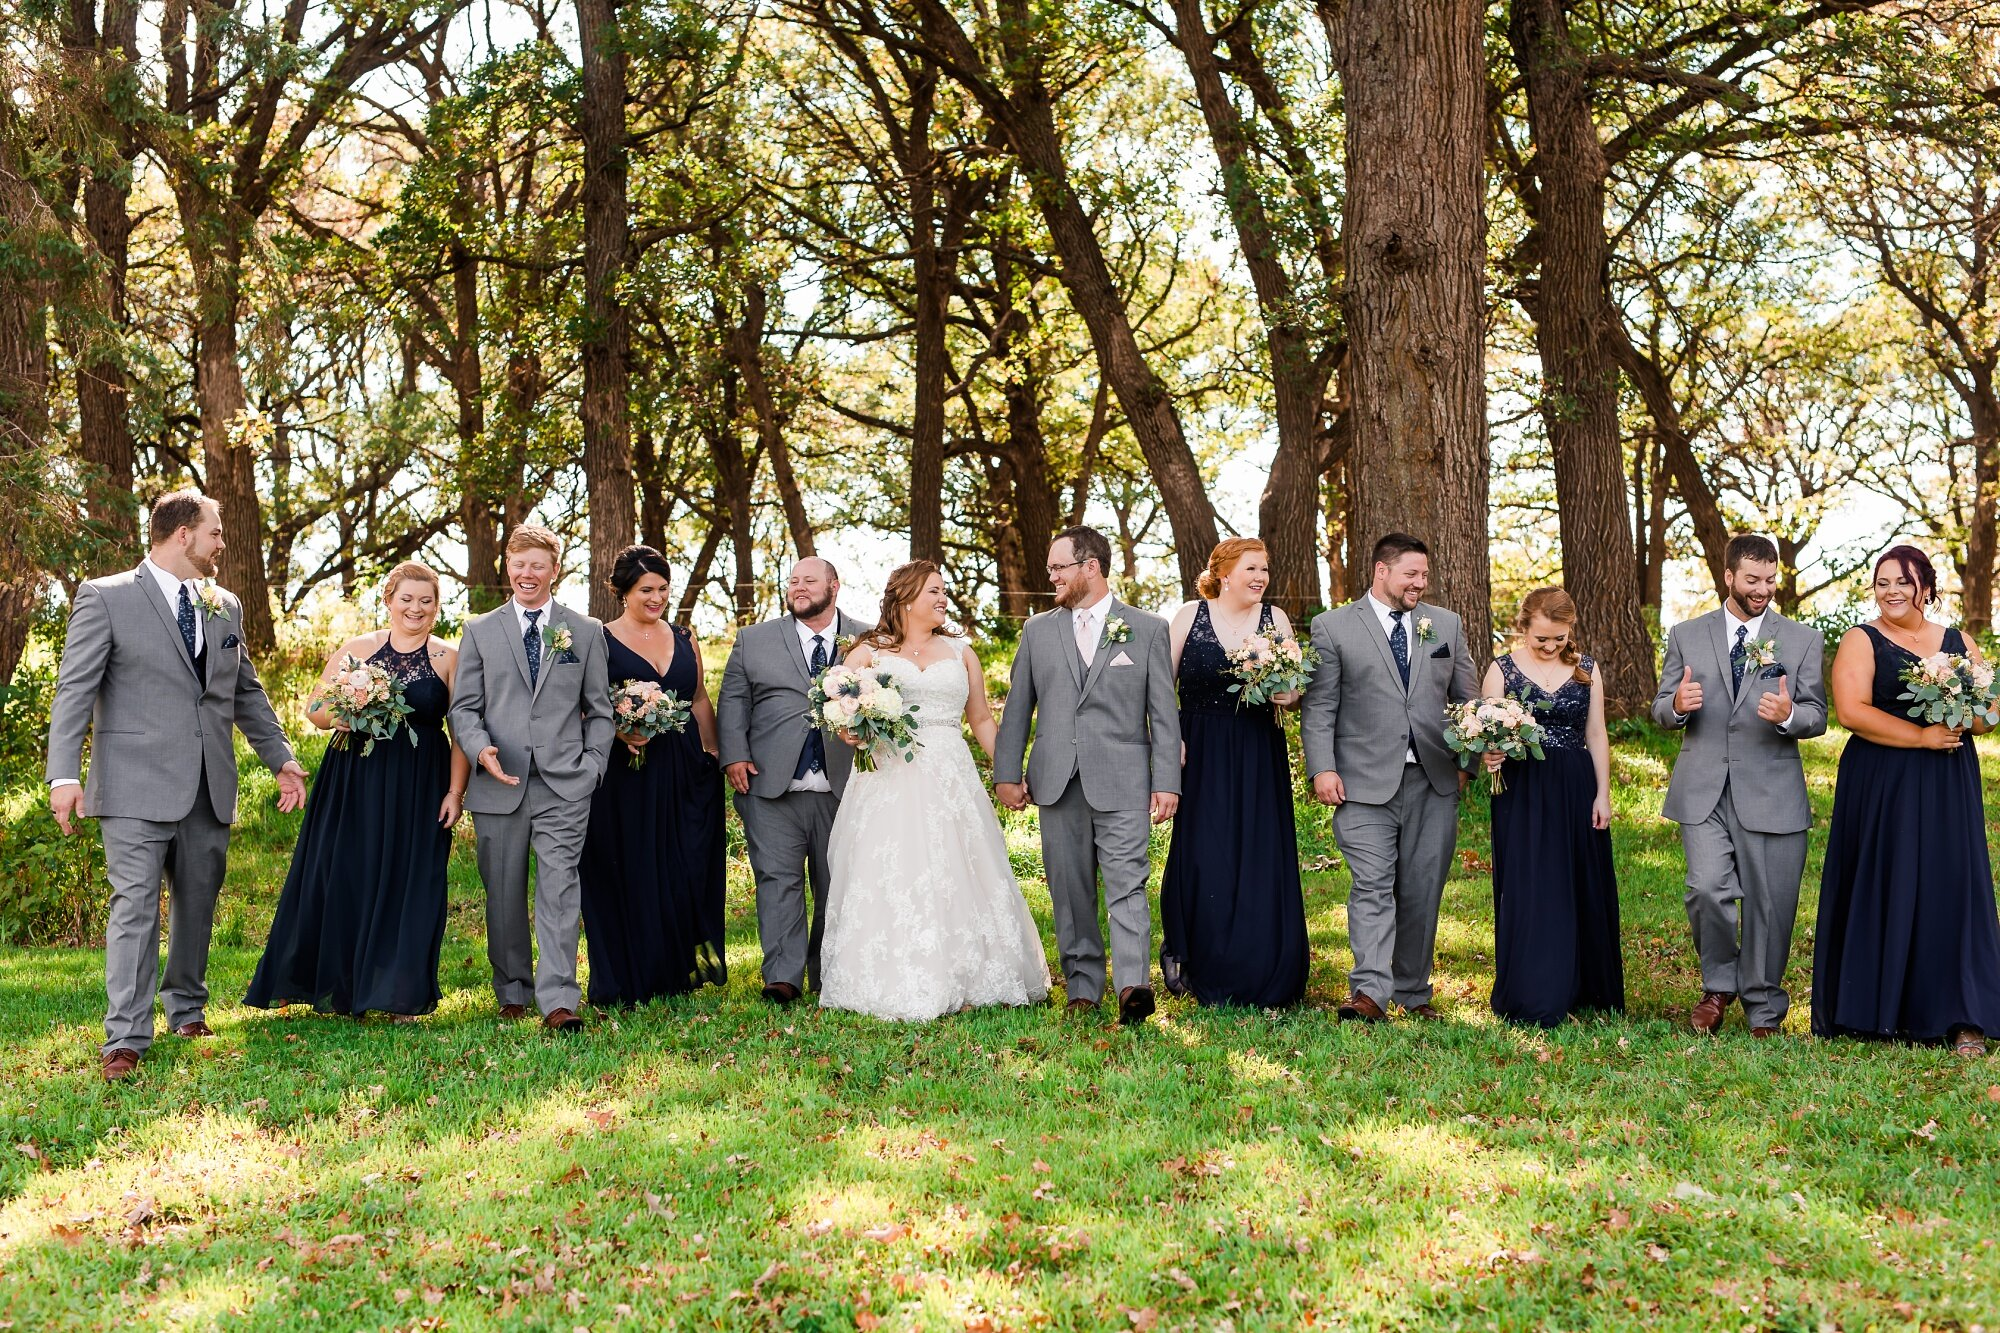 Amber Langerud Photography_Lake Park Minnesota, Outdoor Barn Wedding With Horses_6971.jpg